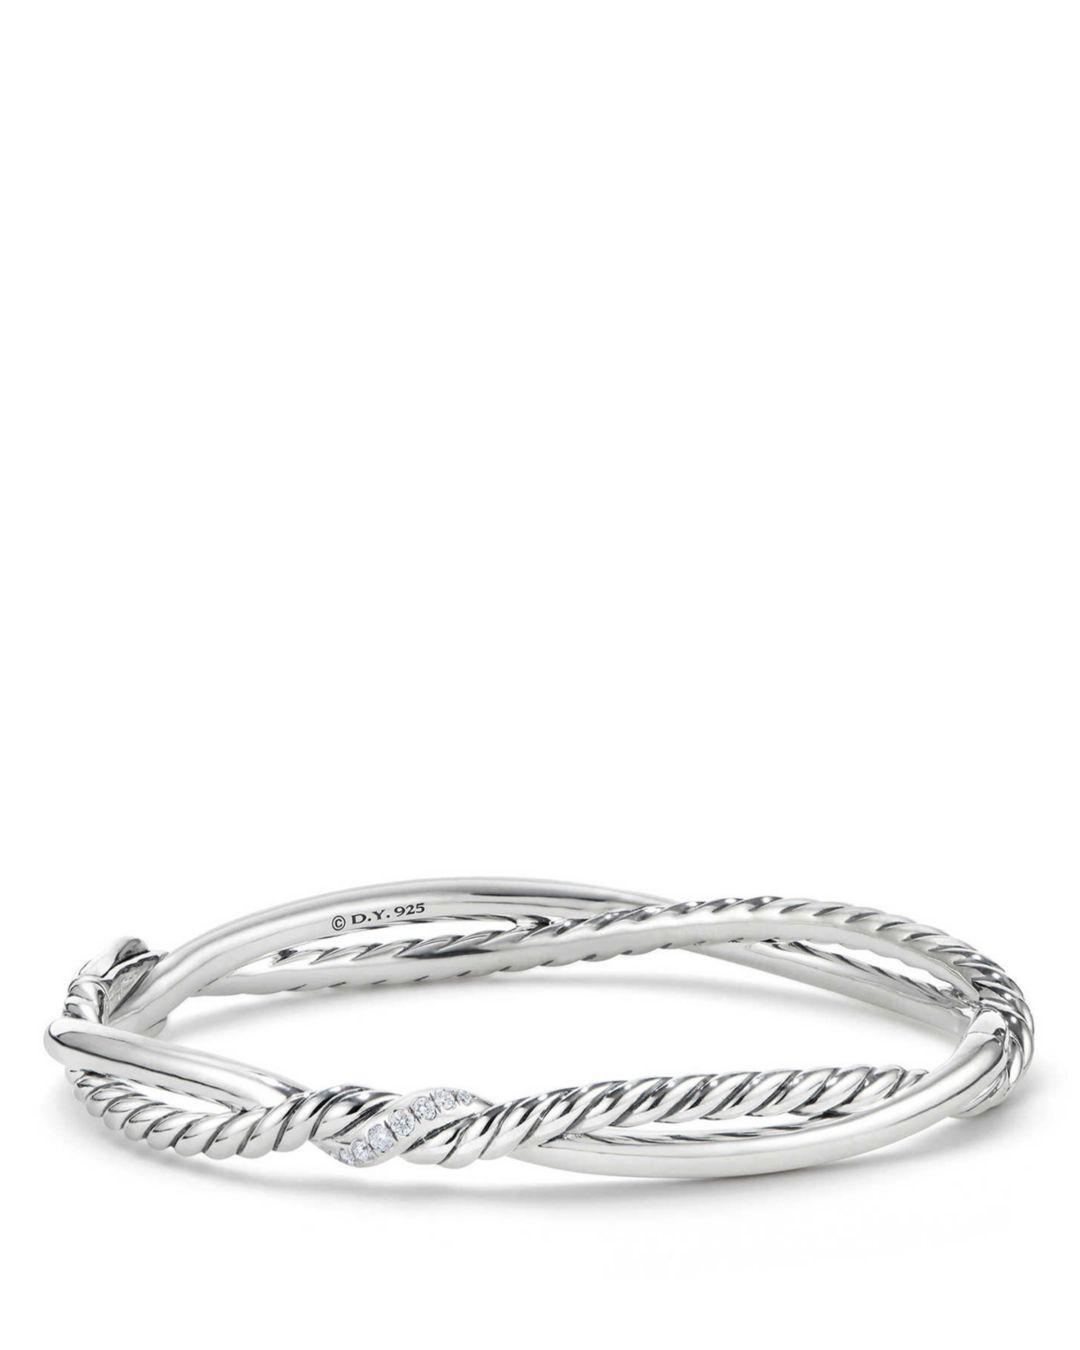 David Yurman Women S Metallic Continuance Small Station Bracelet